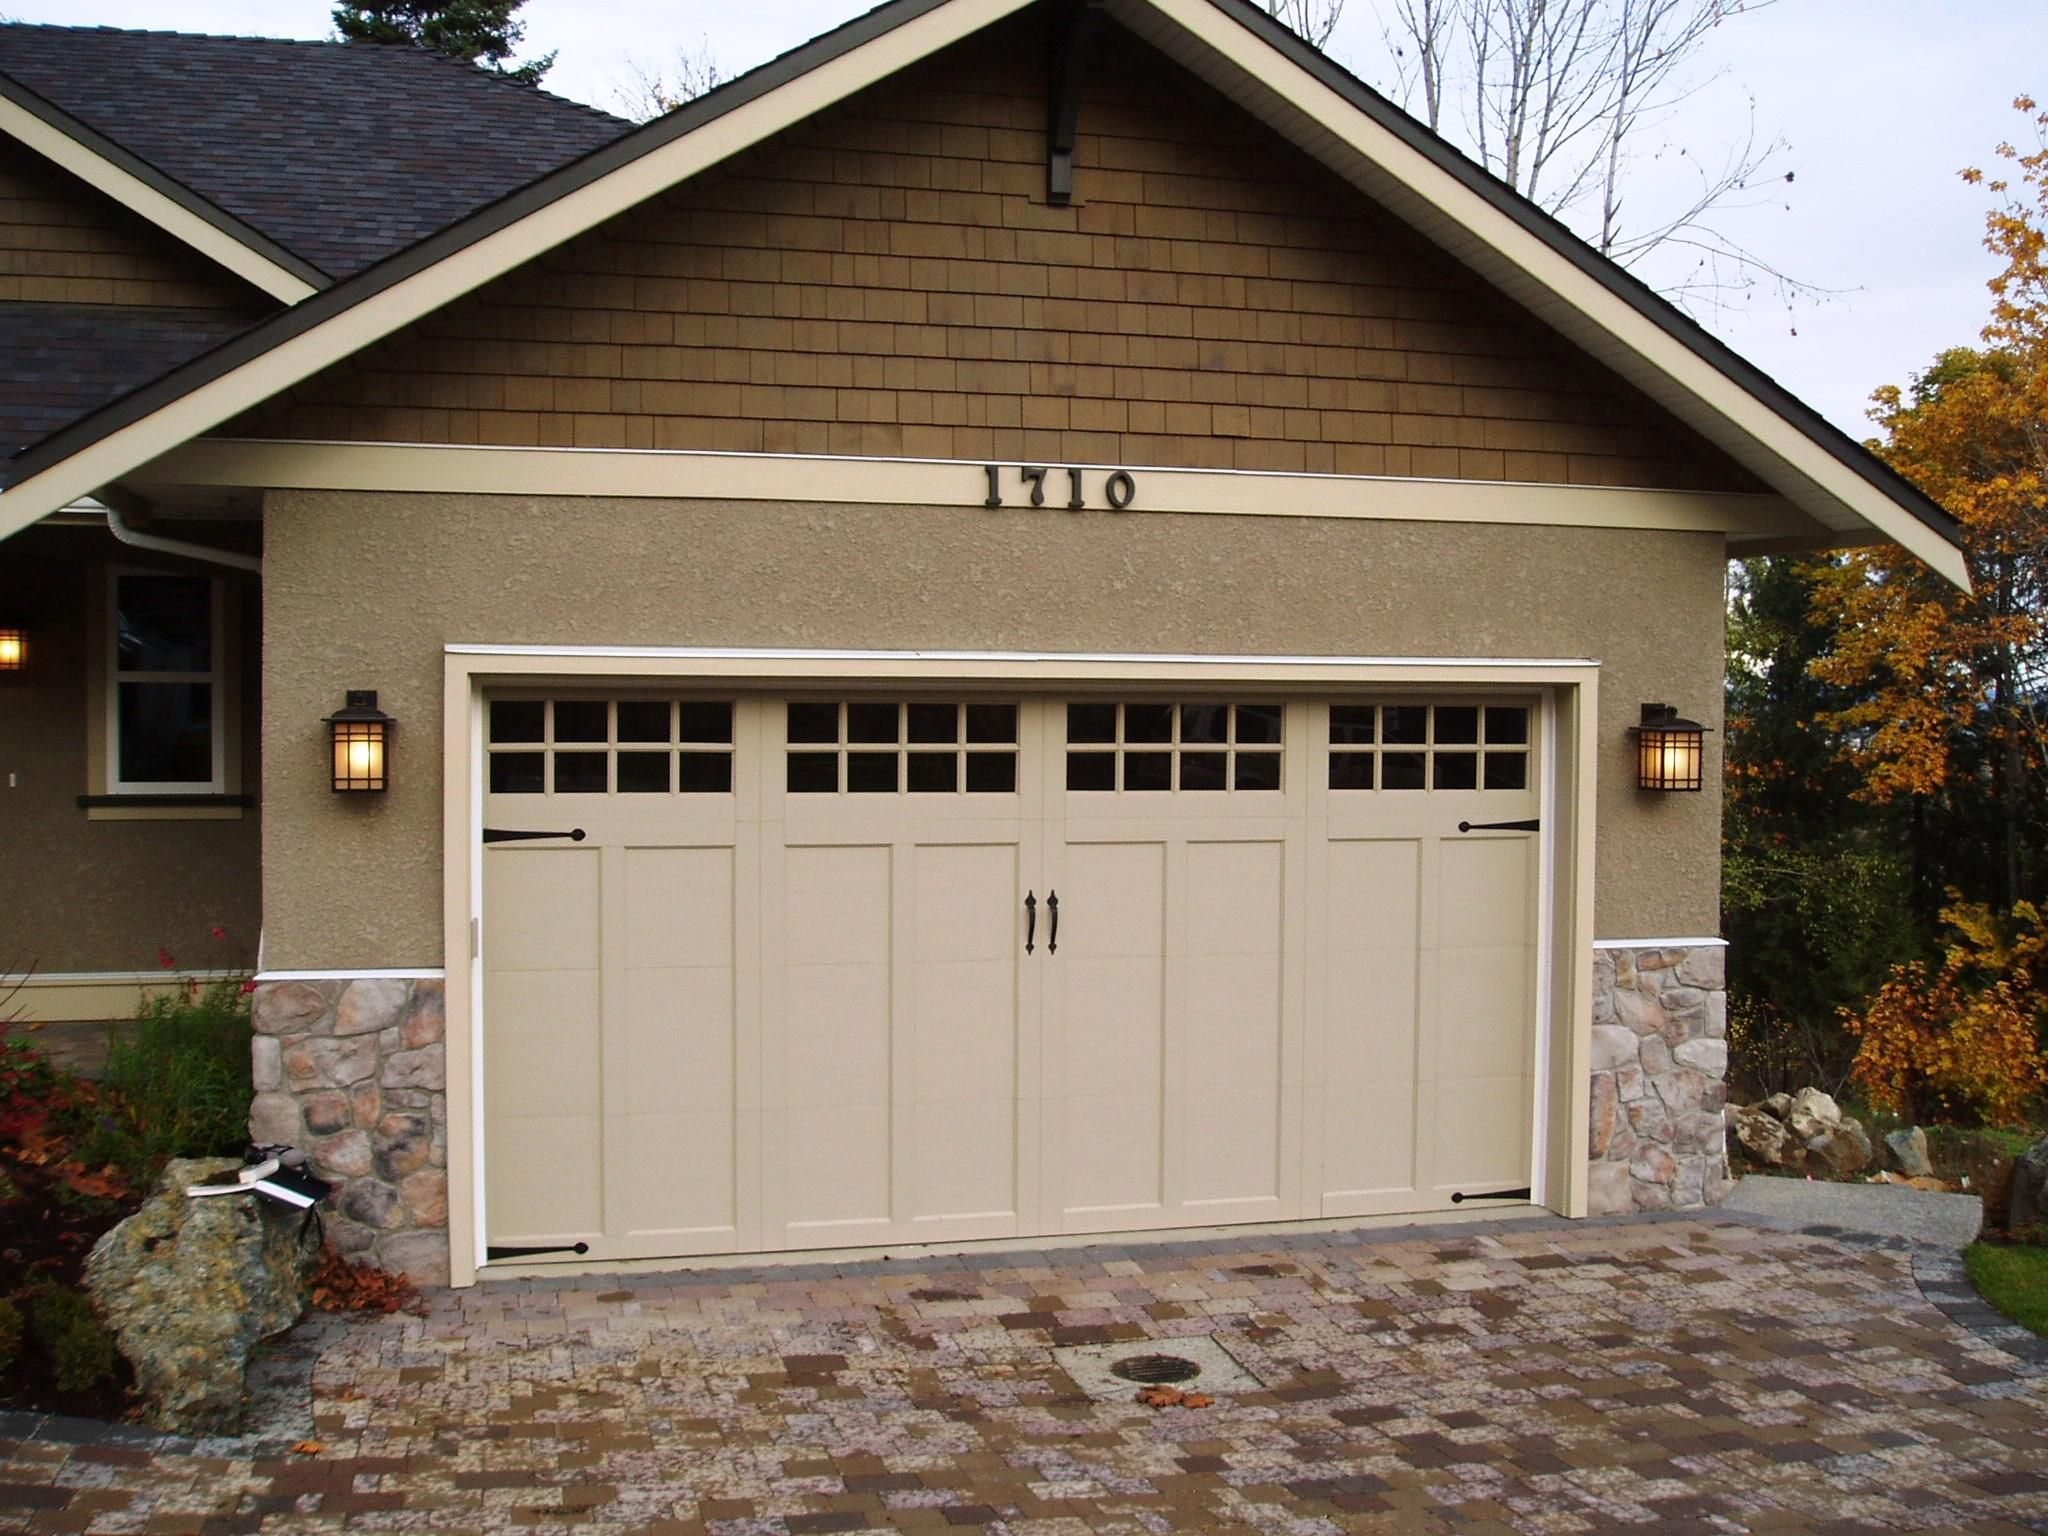 Carriage double garage door - The Simple Panel Design Of This Clopay Coachman Collection Carriage Style Garage Door Blends Perfectly With